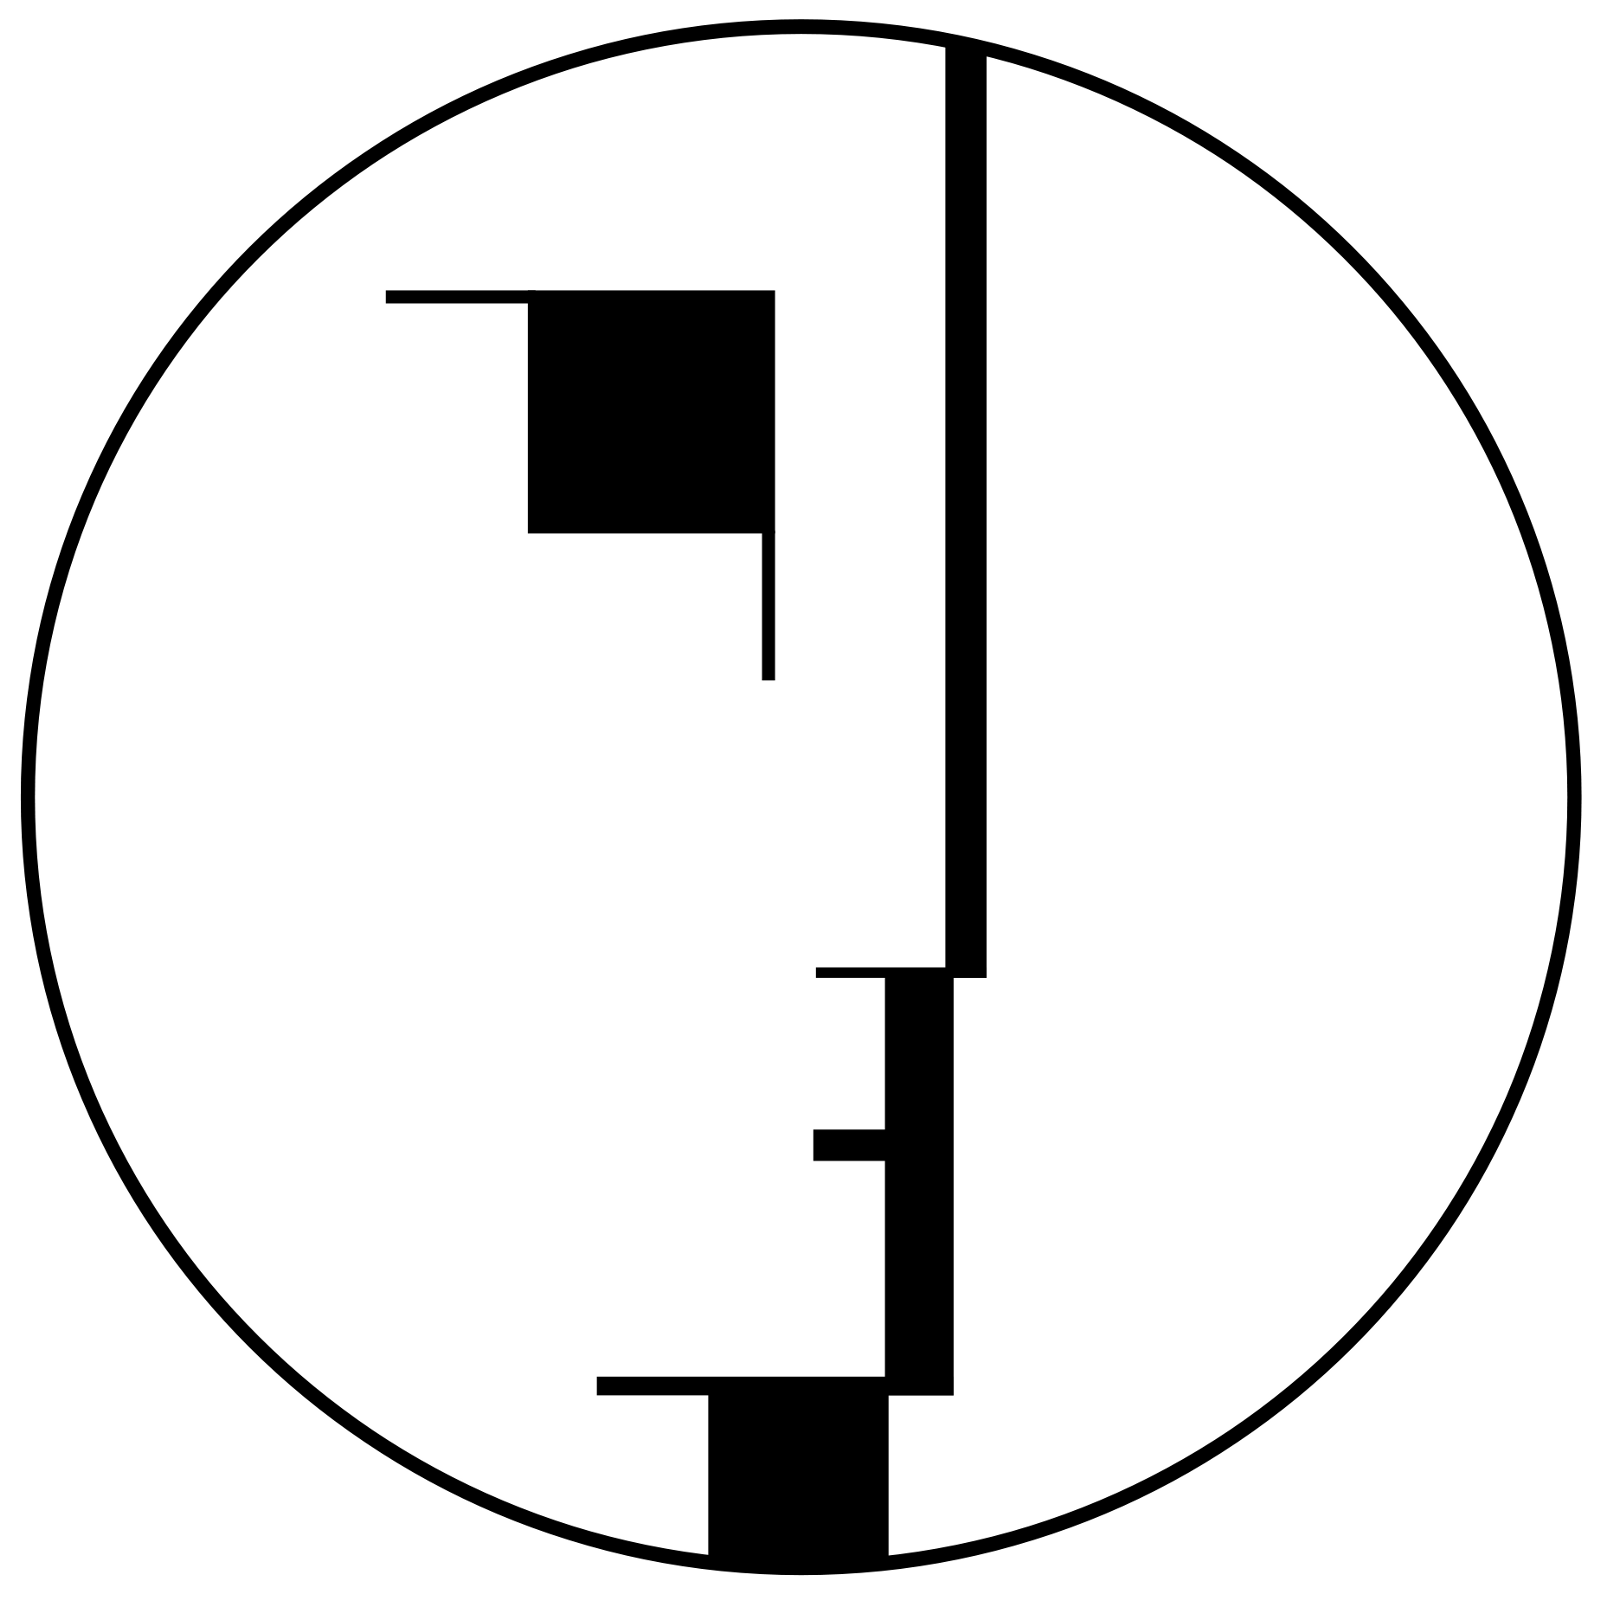 Exquisite Corpse: A Walking Tour of the Bauhaus Discography